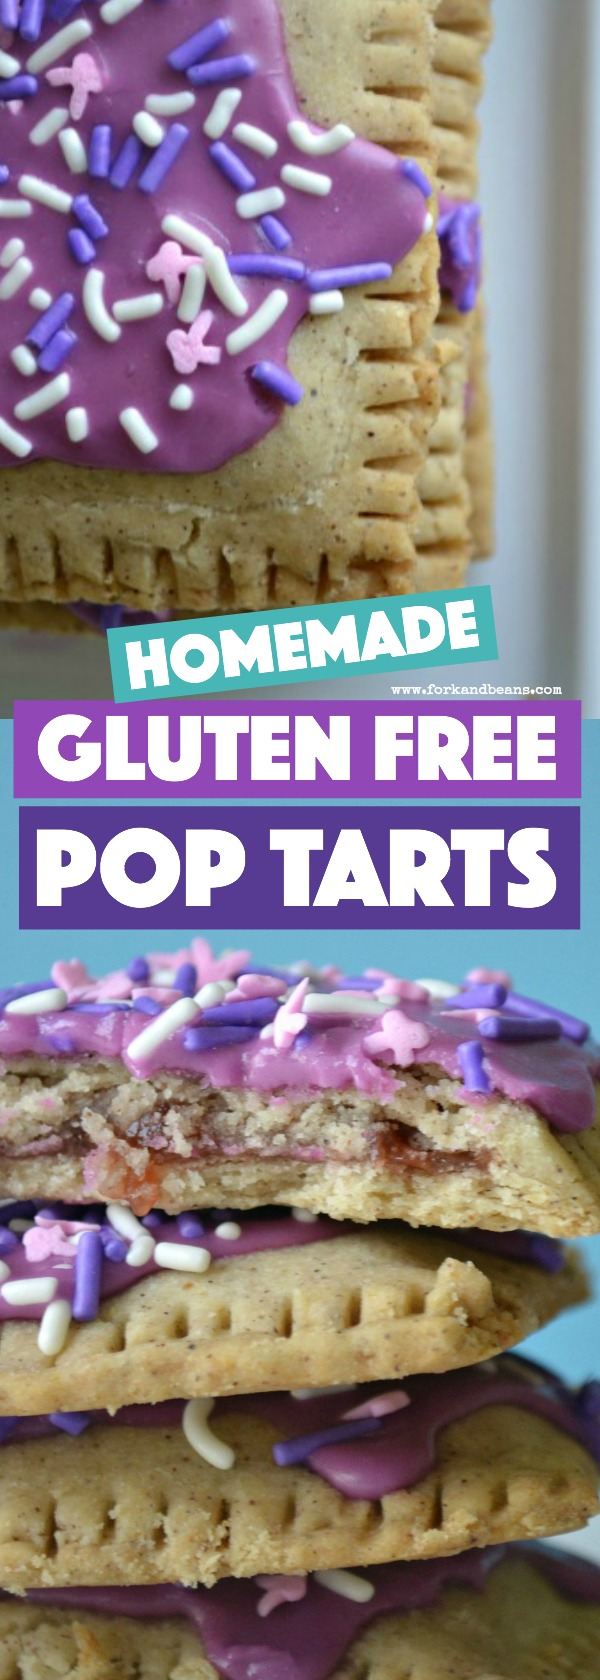 These homemade gluten free PopTarts are just as you remembered them to taste like from your childhood!